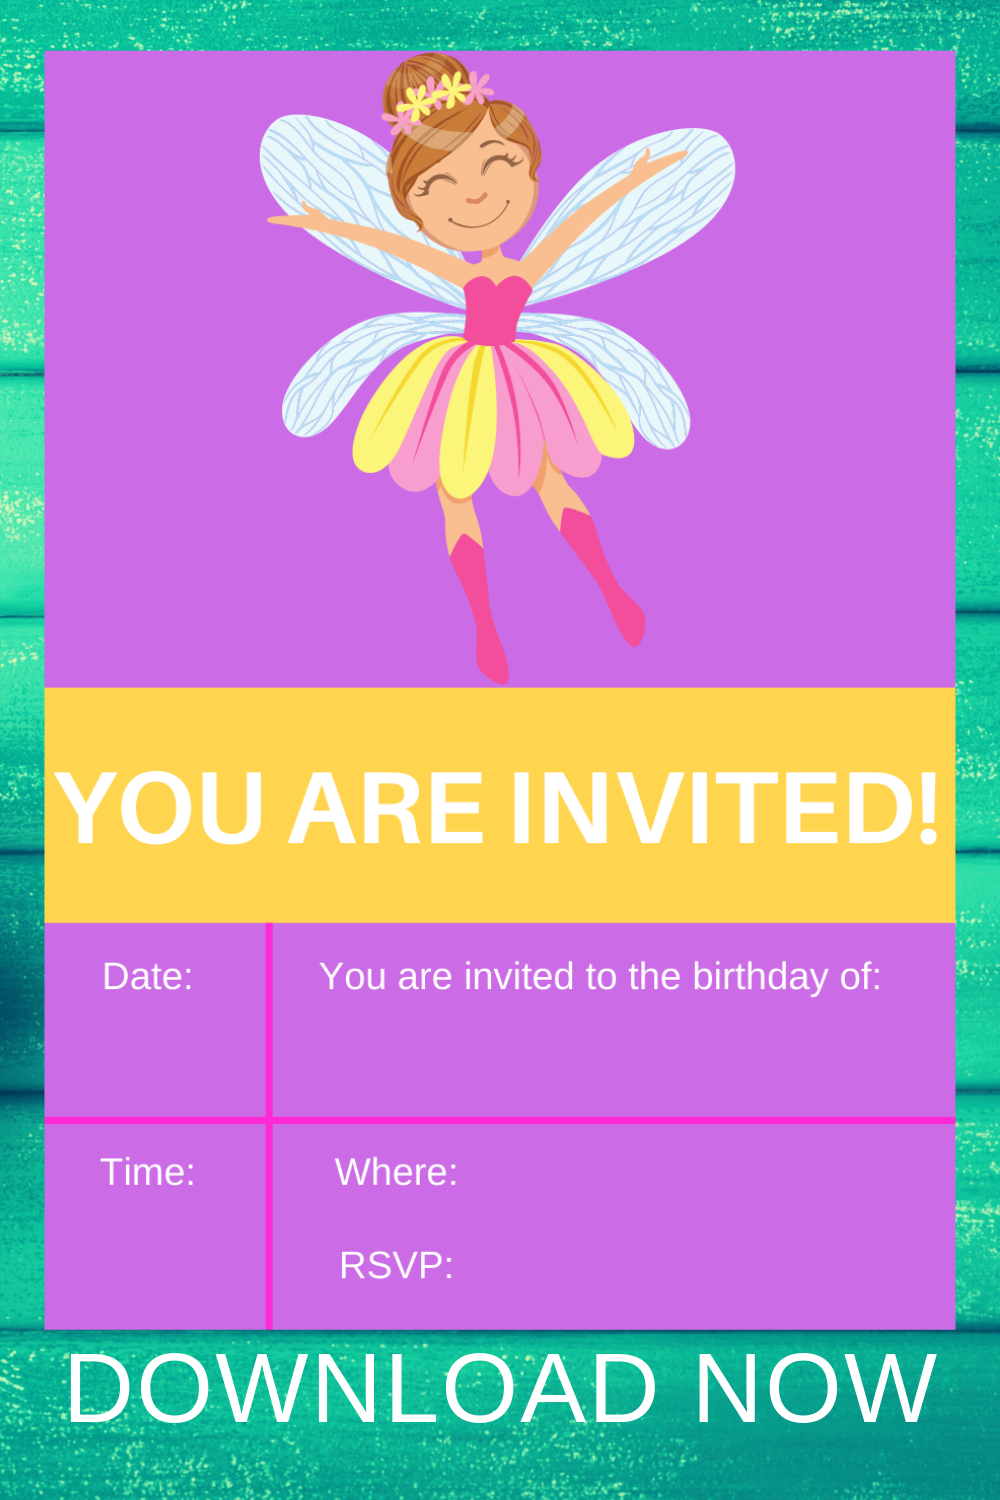 free download, fairy garden 5x7 themed birthday invite card